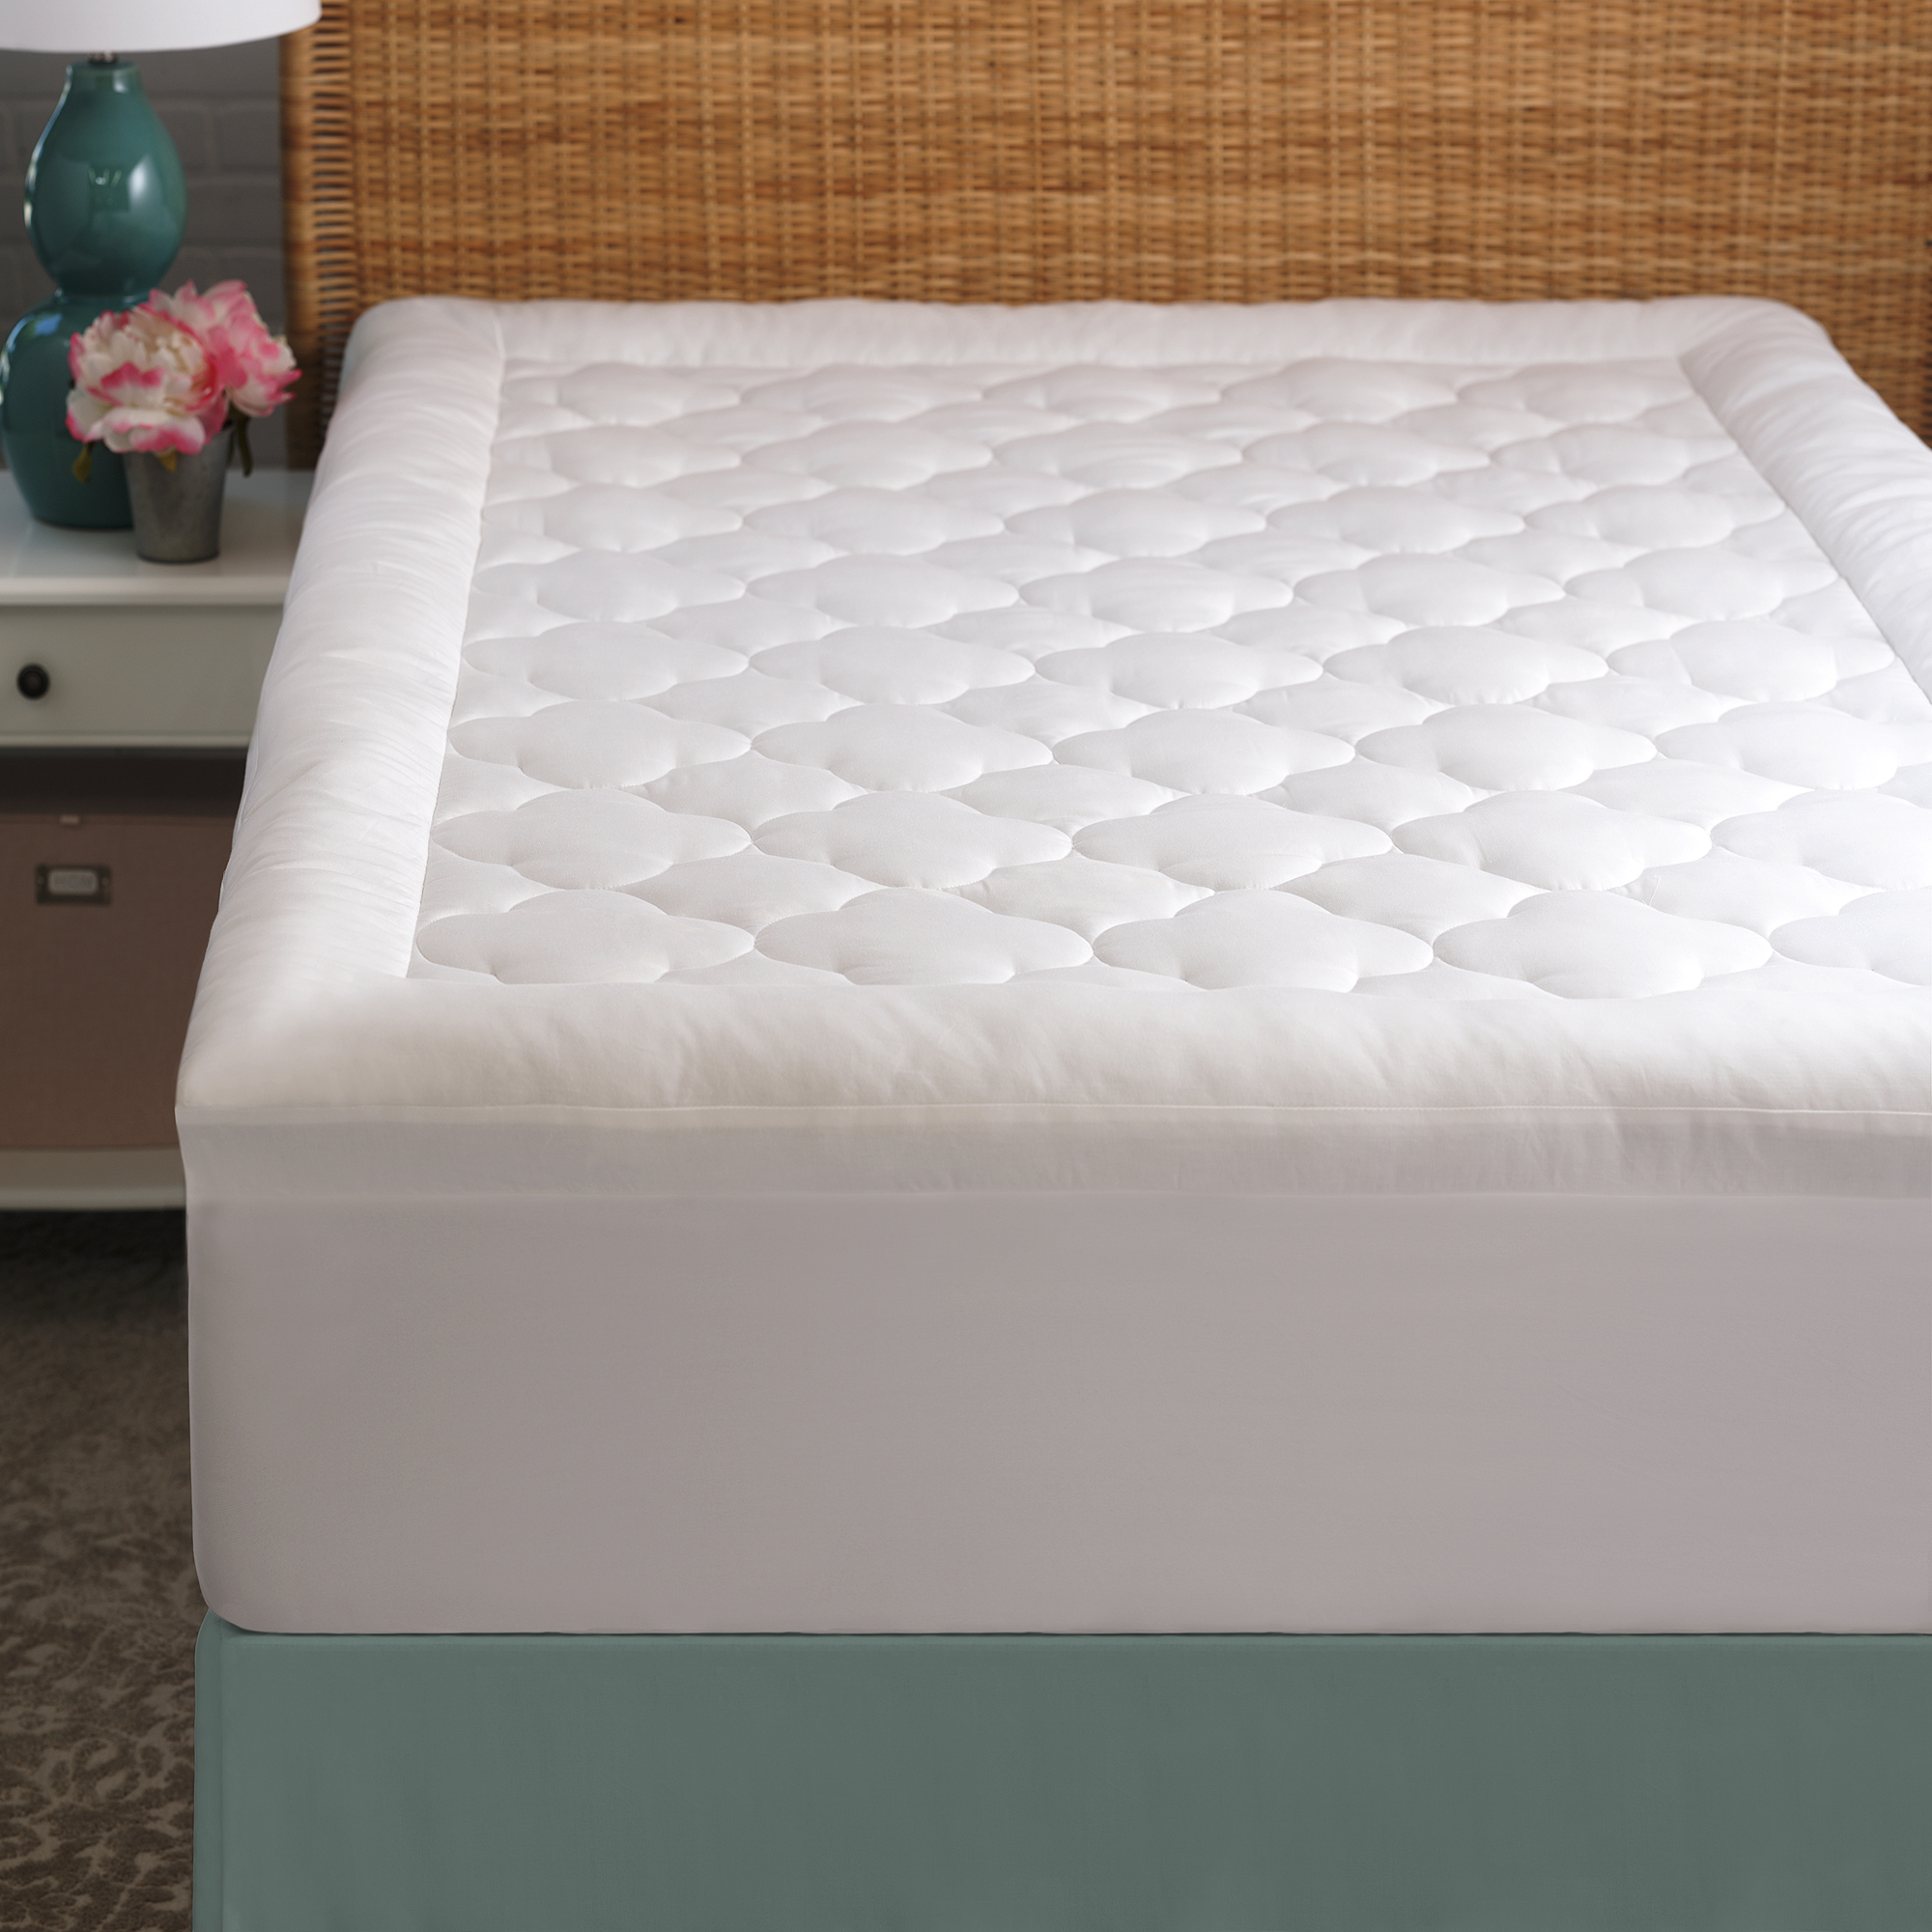 Cozy Classics Clouds Mattress Protector, 2""